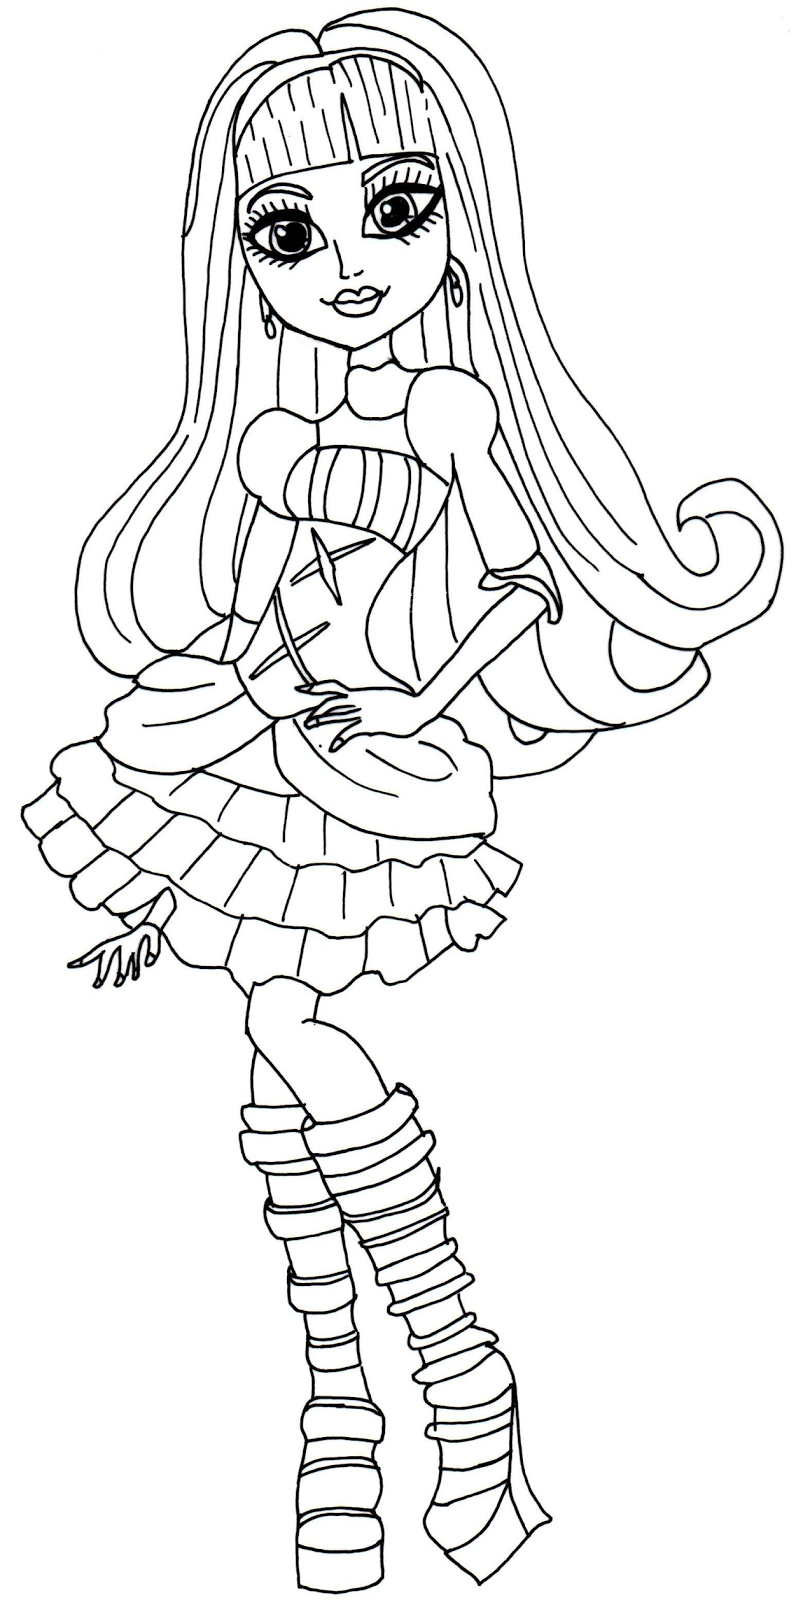 new monster high dolls 2014 coloring pages: Elissabat Free